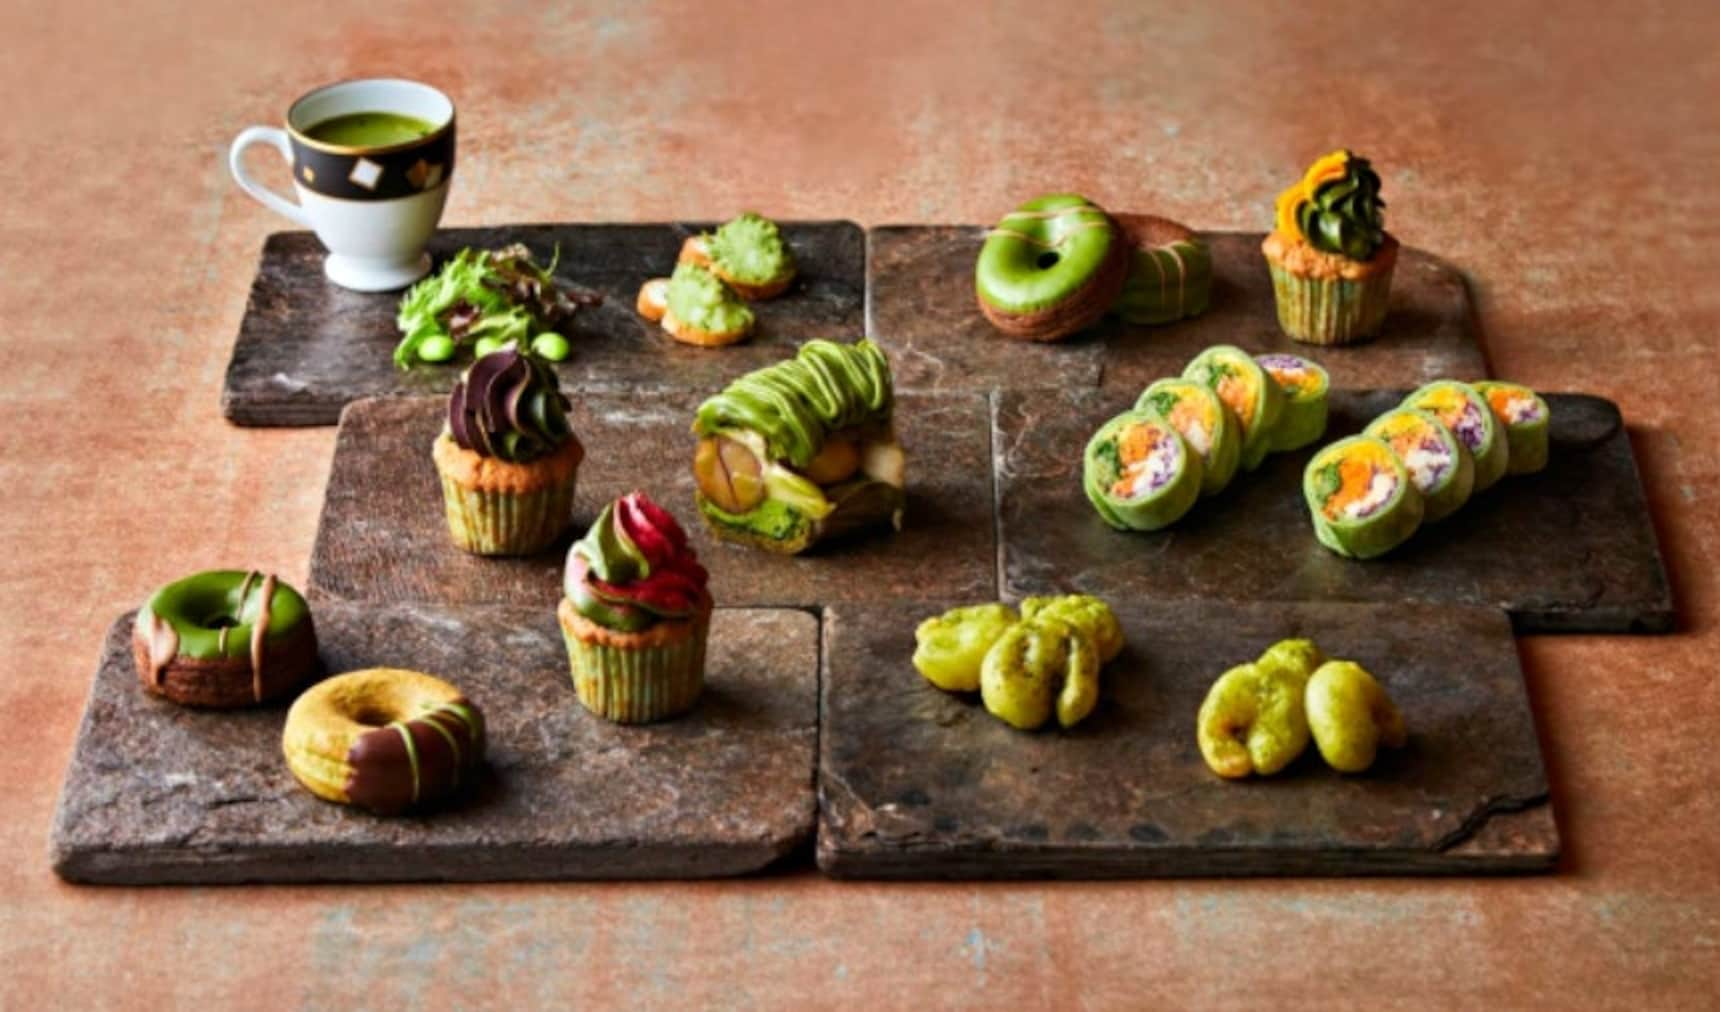 Craving Matcha Infused Goods? Come to Osaka!